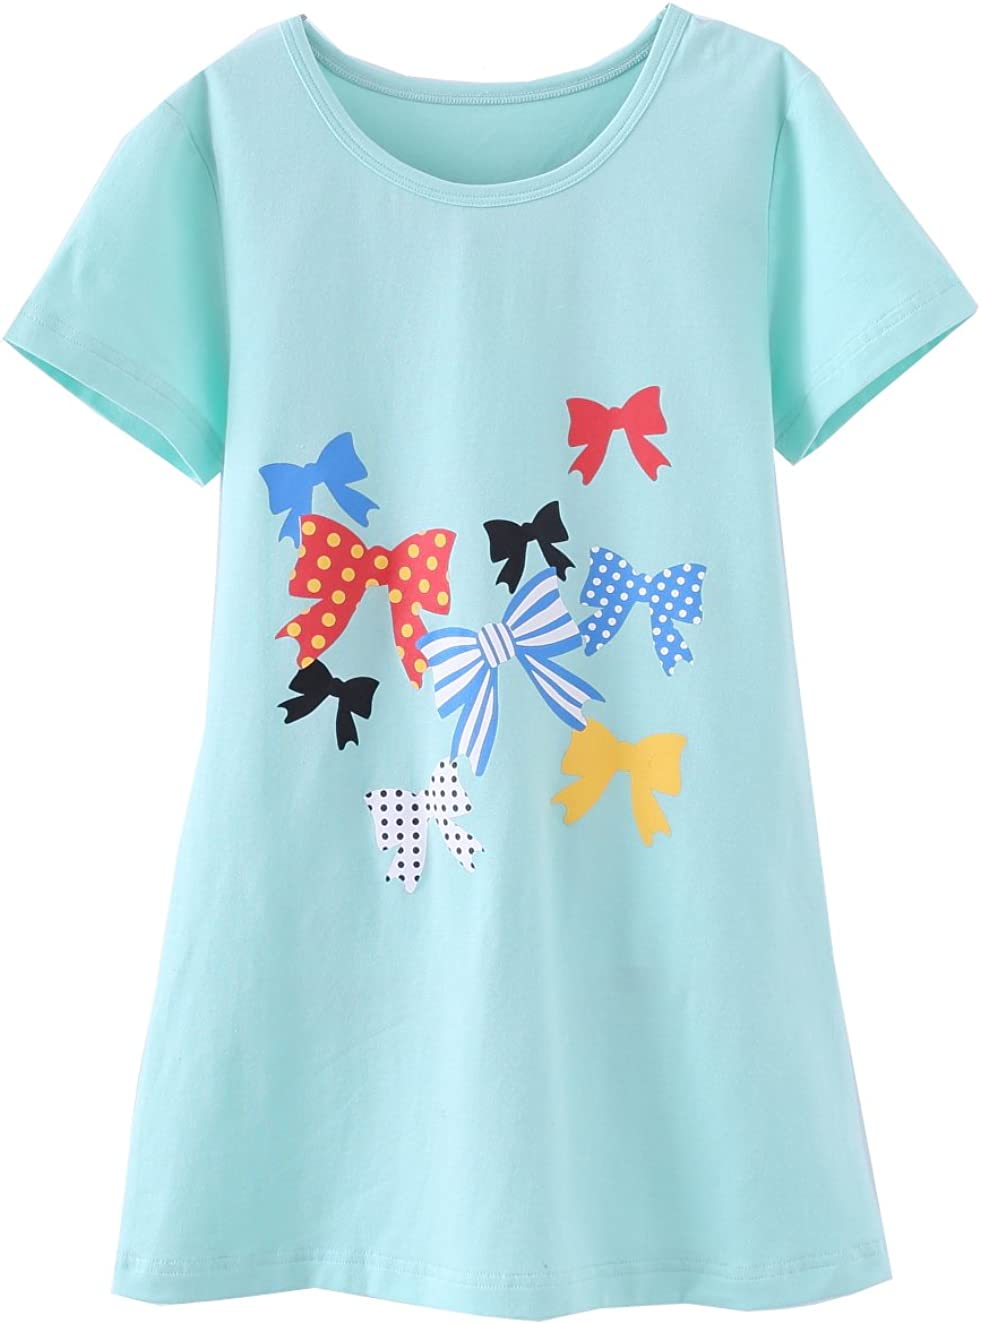 ABClothing Grils Cotton Dress /& Soft Nightgown Vary Colors 2-10 Years Old